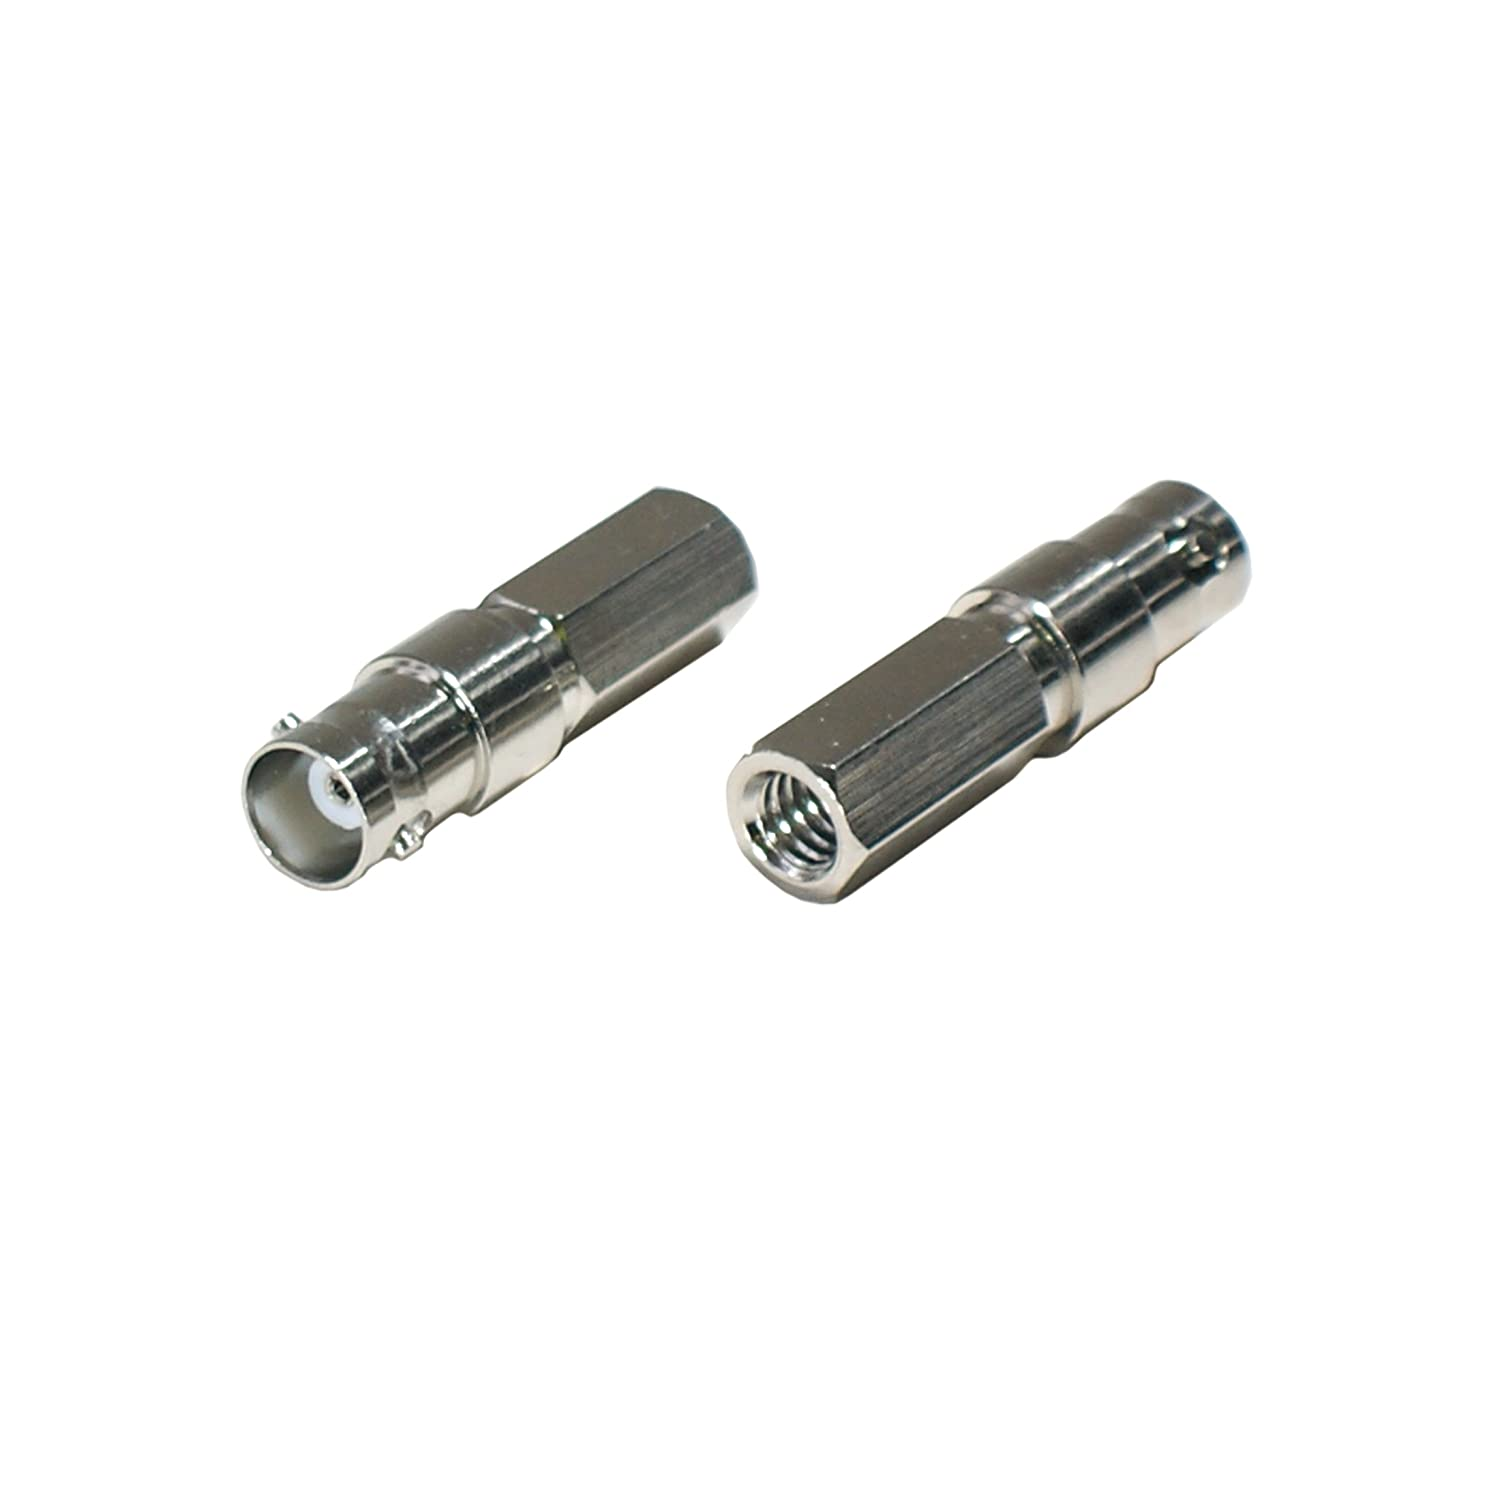 Amazon.com: BNC CONNECTOR 75 OHM SOCKET -CCTV RG59 SCREW/TWIST ON- FEMALE COAX/COAXIAL CABLE: Home Audio & Theater